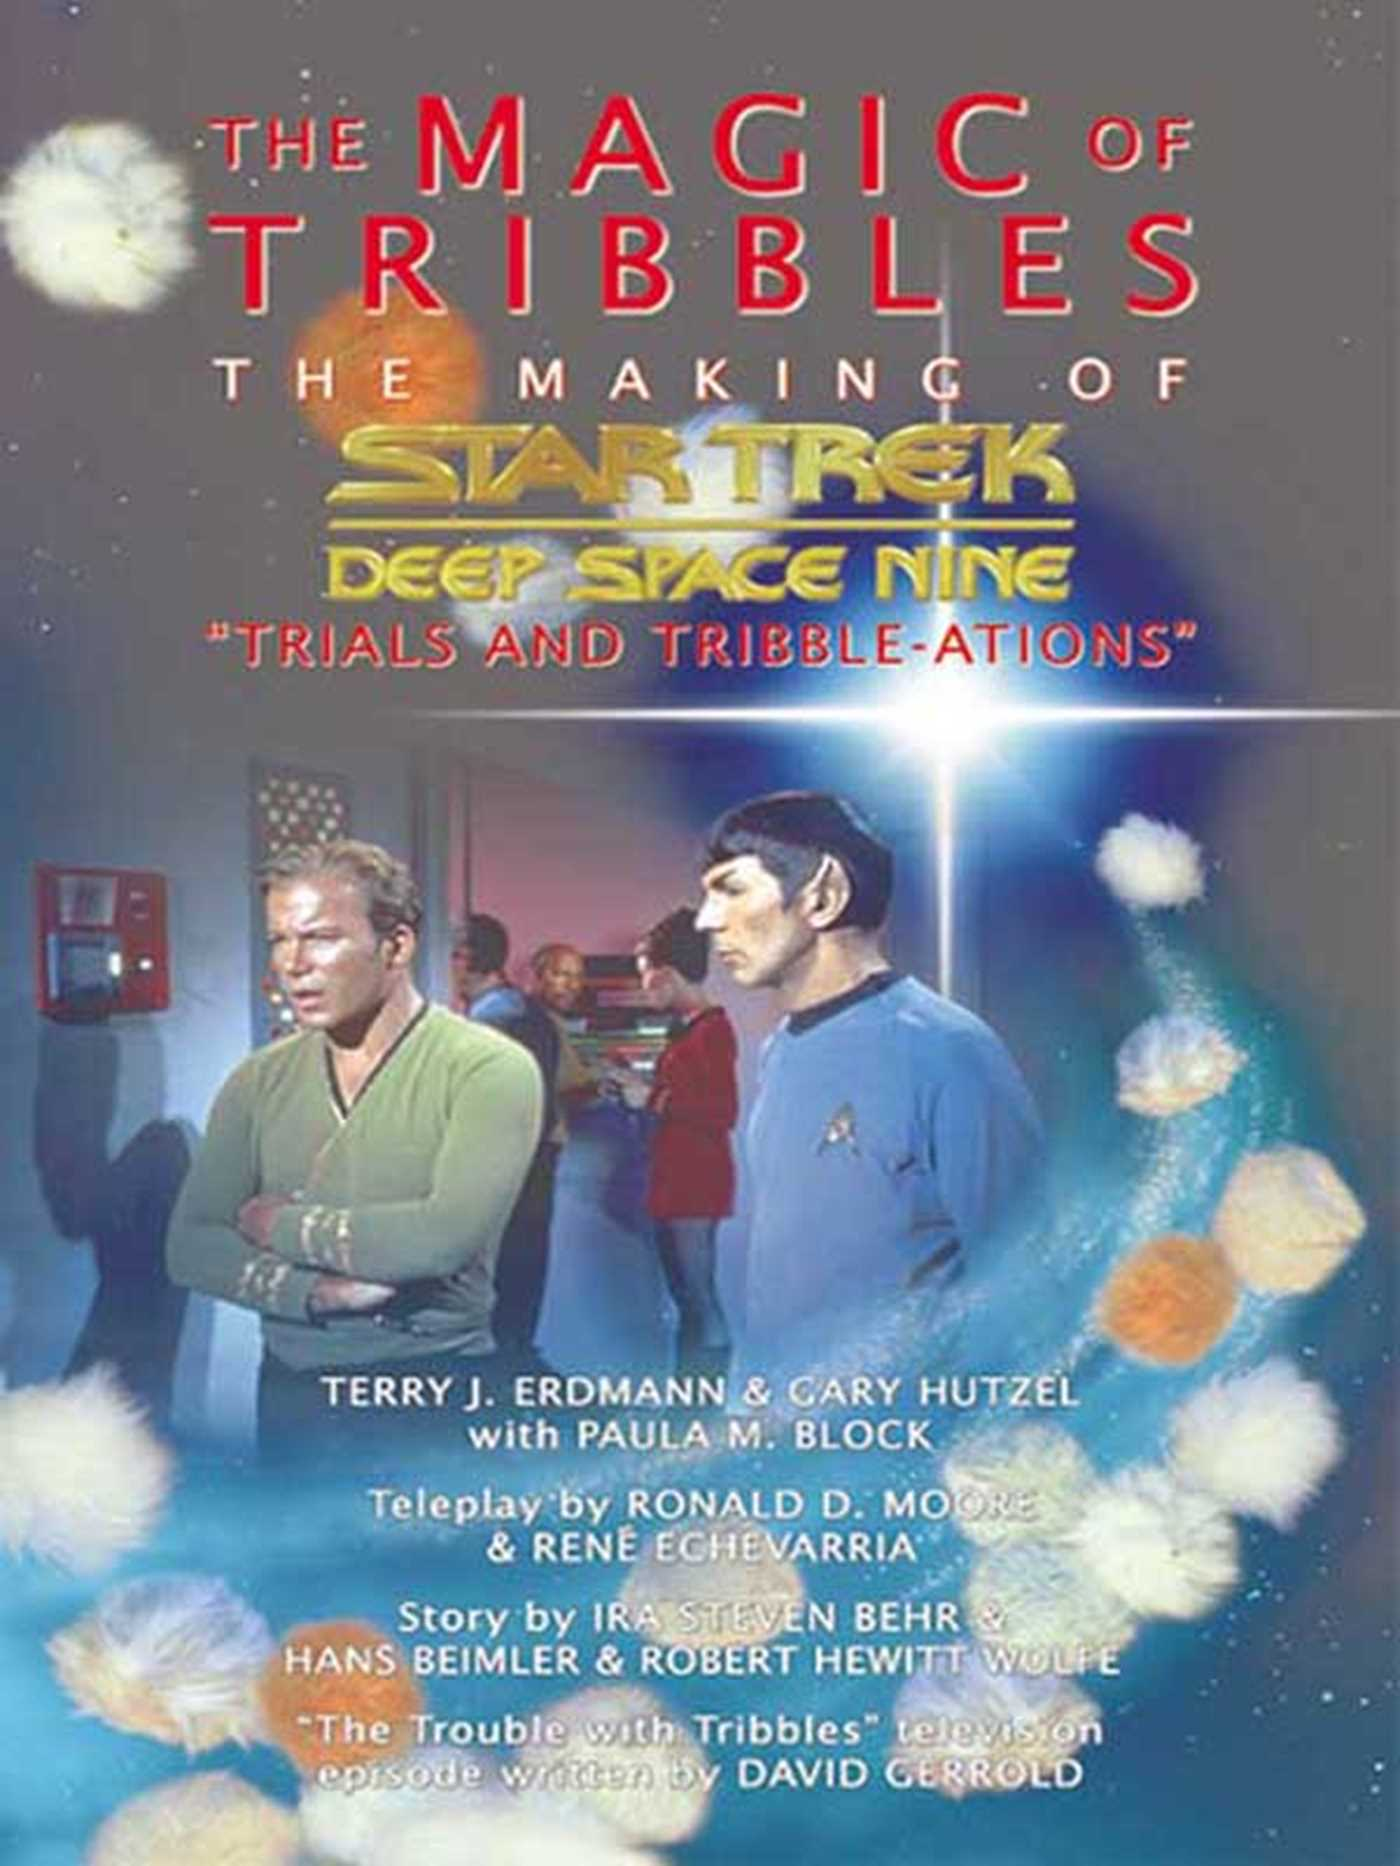 Star-trek-the-magic-of-tribbles-9780743446235_hr